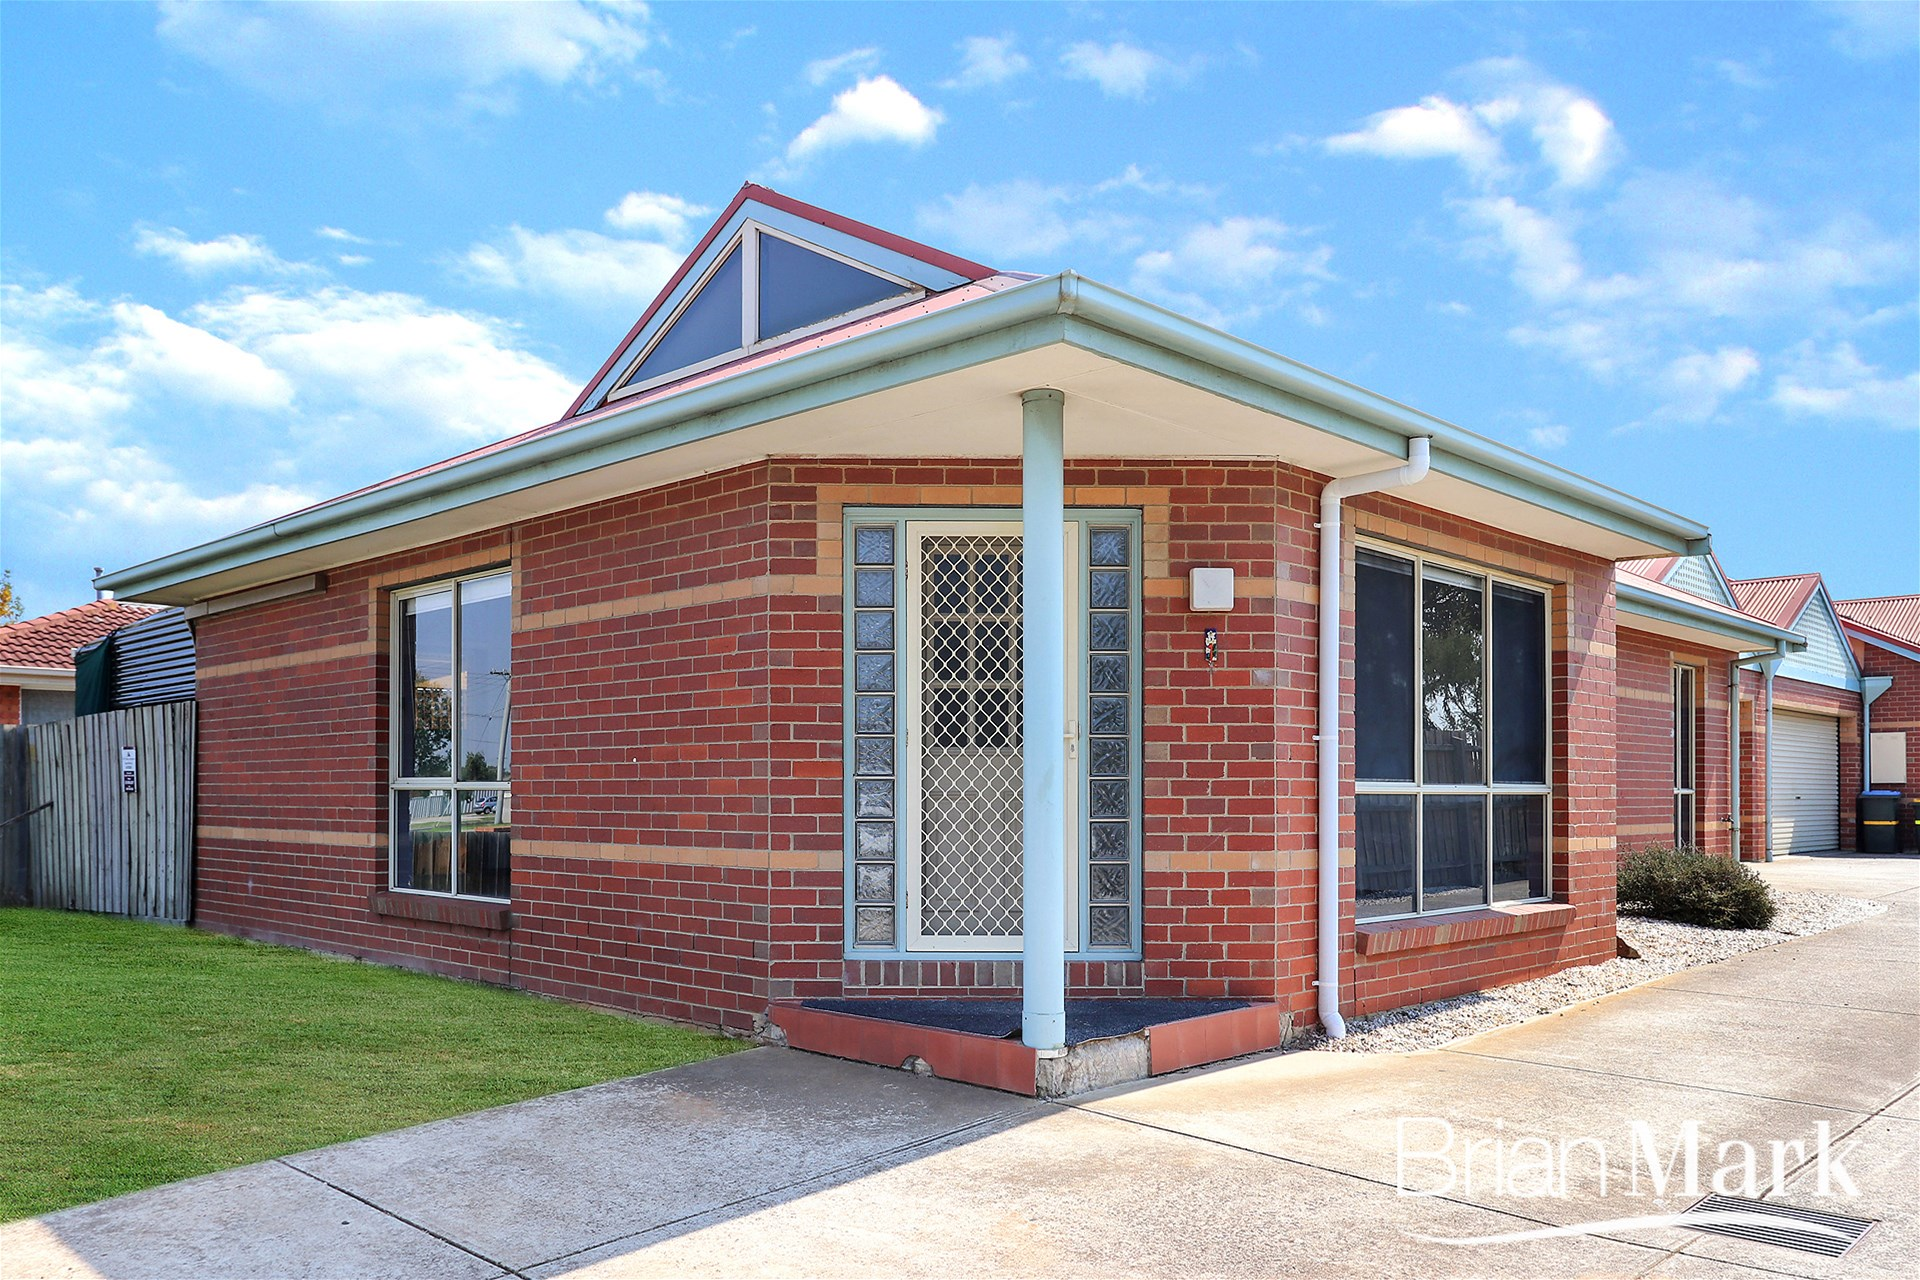 Sold Quickly - Similar Homes Wanted Nearby